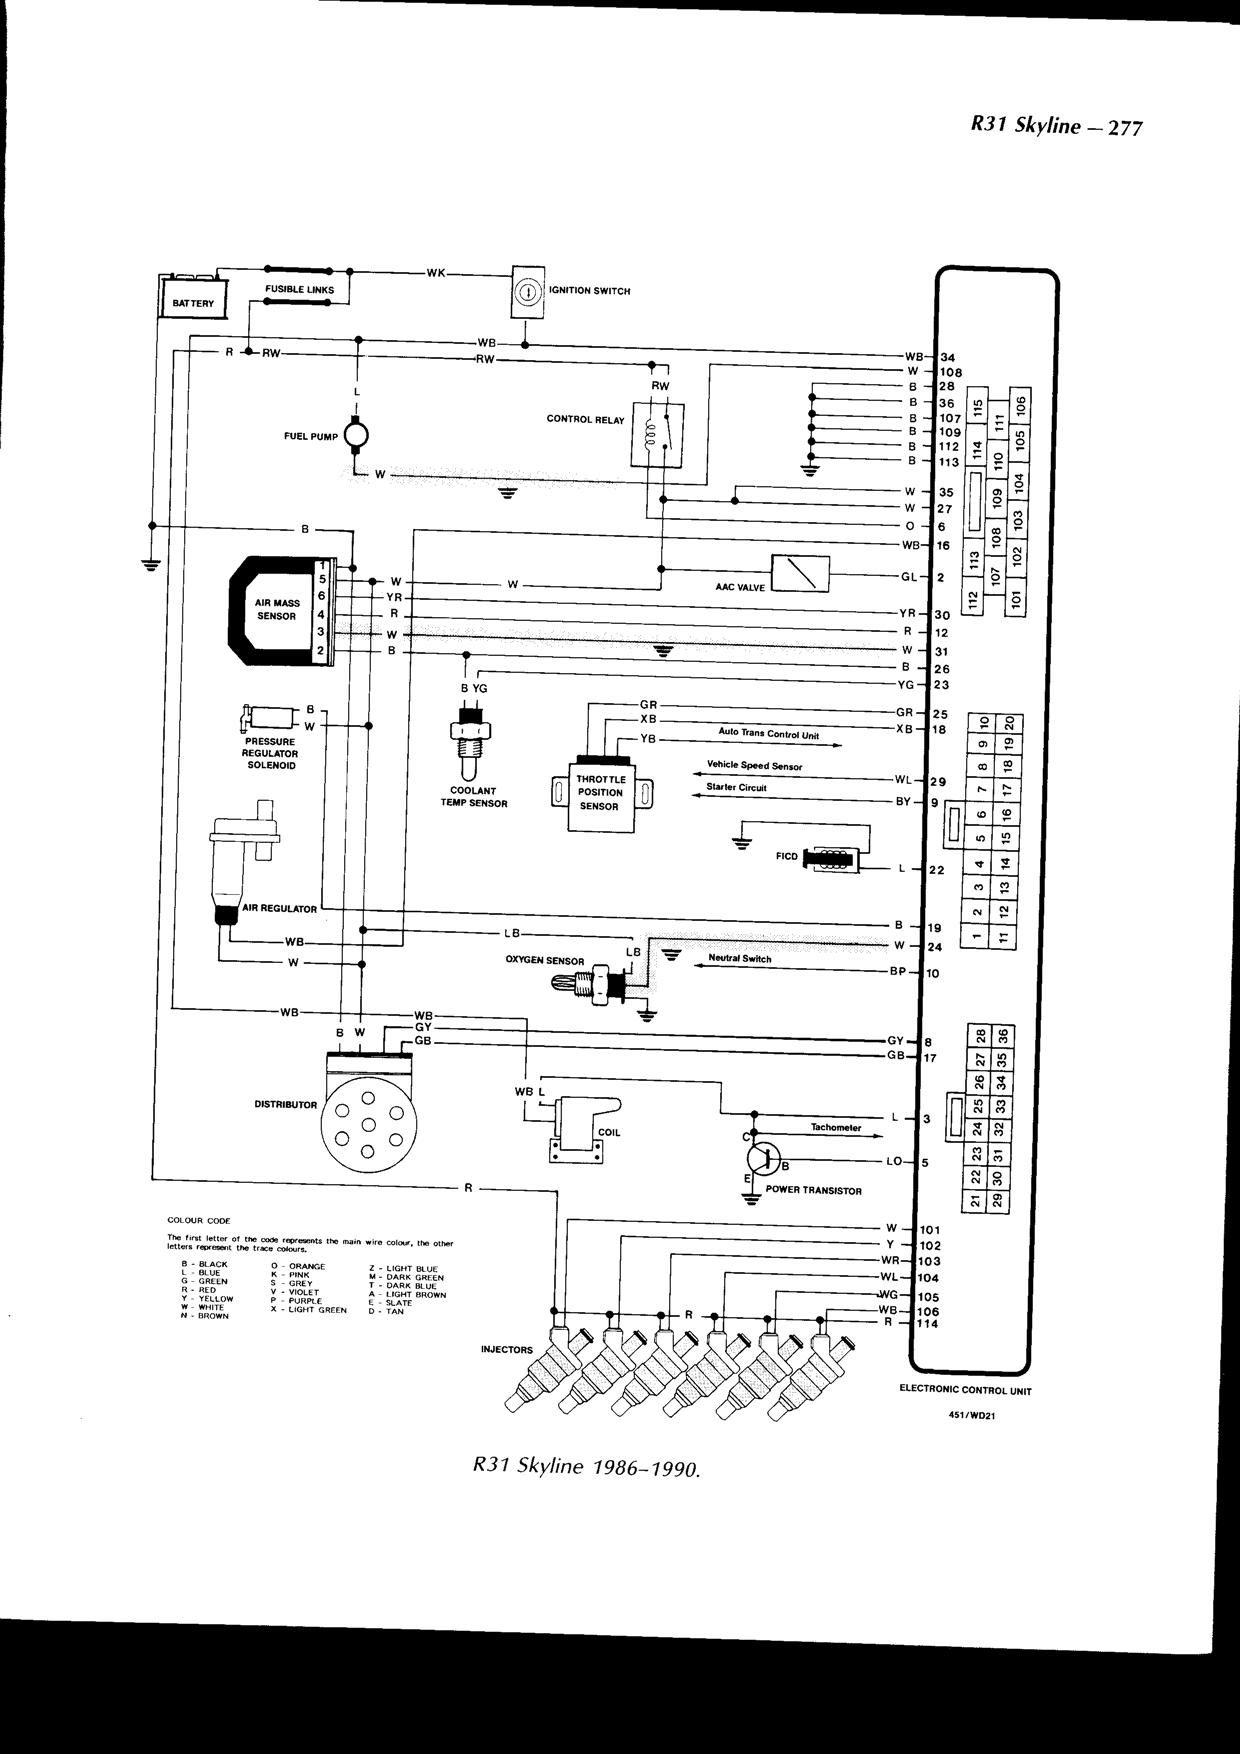 cd688f8659931bf98d274ca120c931d1 Nissan Sunny Wiring Diagram Pdf on solar cell, kenworth t2000, ce0913hp, york yksqs4k45djgs model, gas furnace, l15-30p, automotive electrical, m35 front, cz230er,